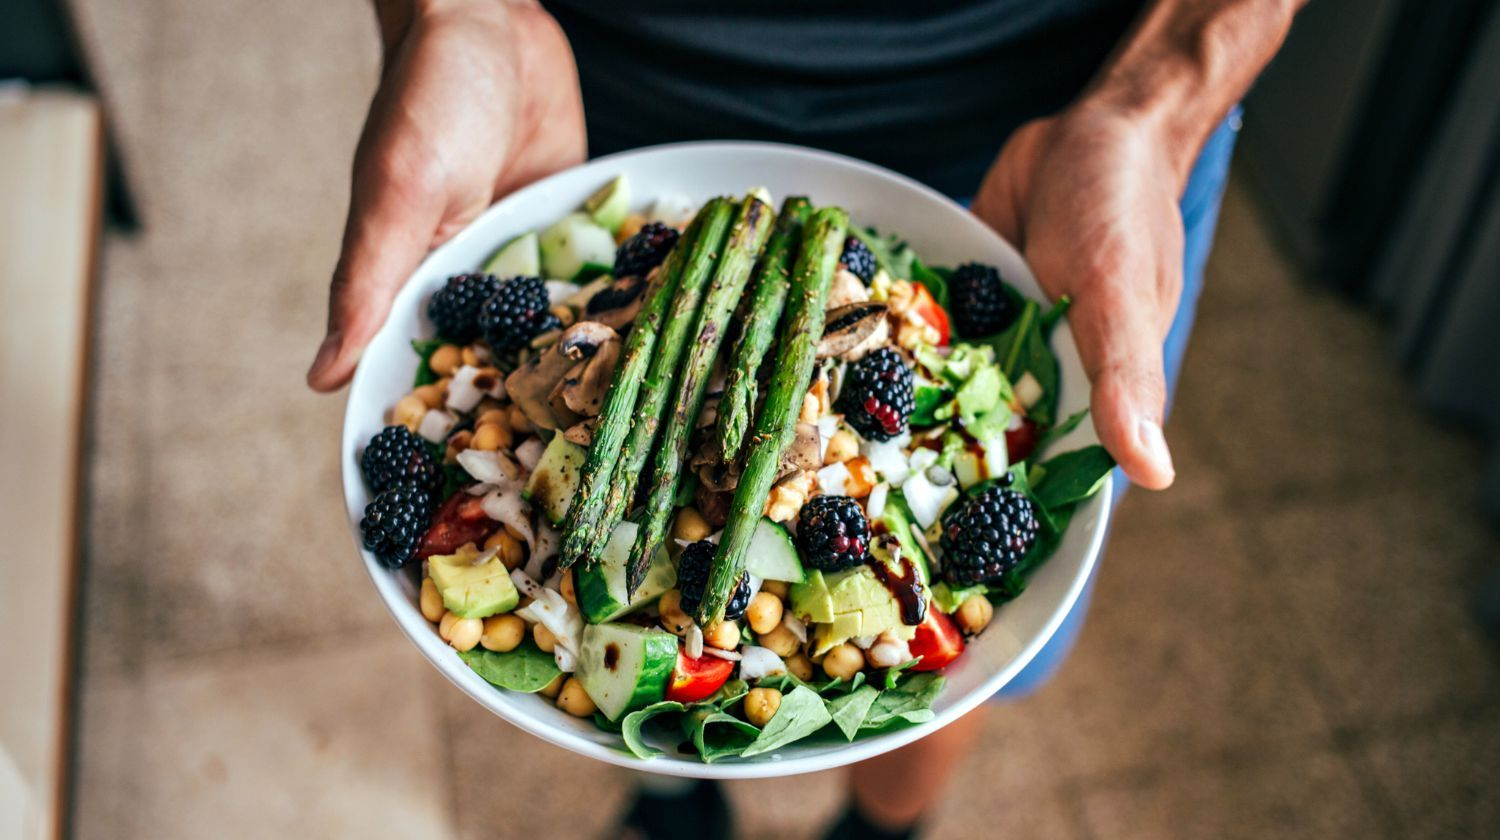 7 High Protein Foods For Vegan Diets Healthy eating plan